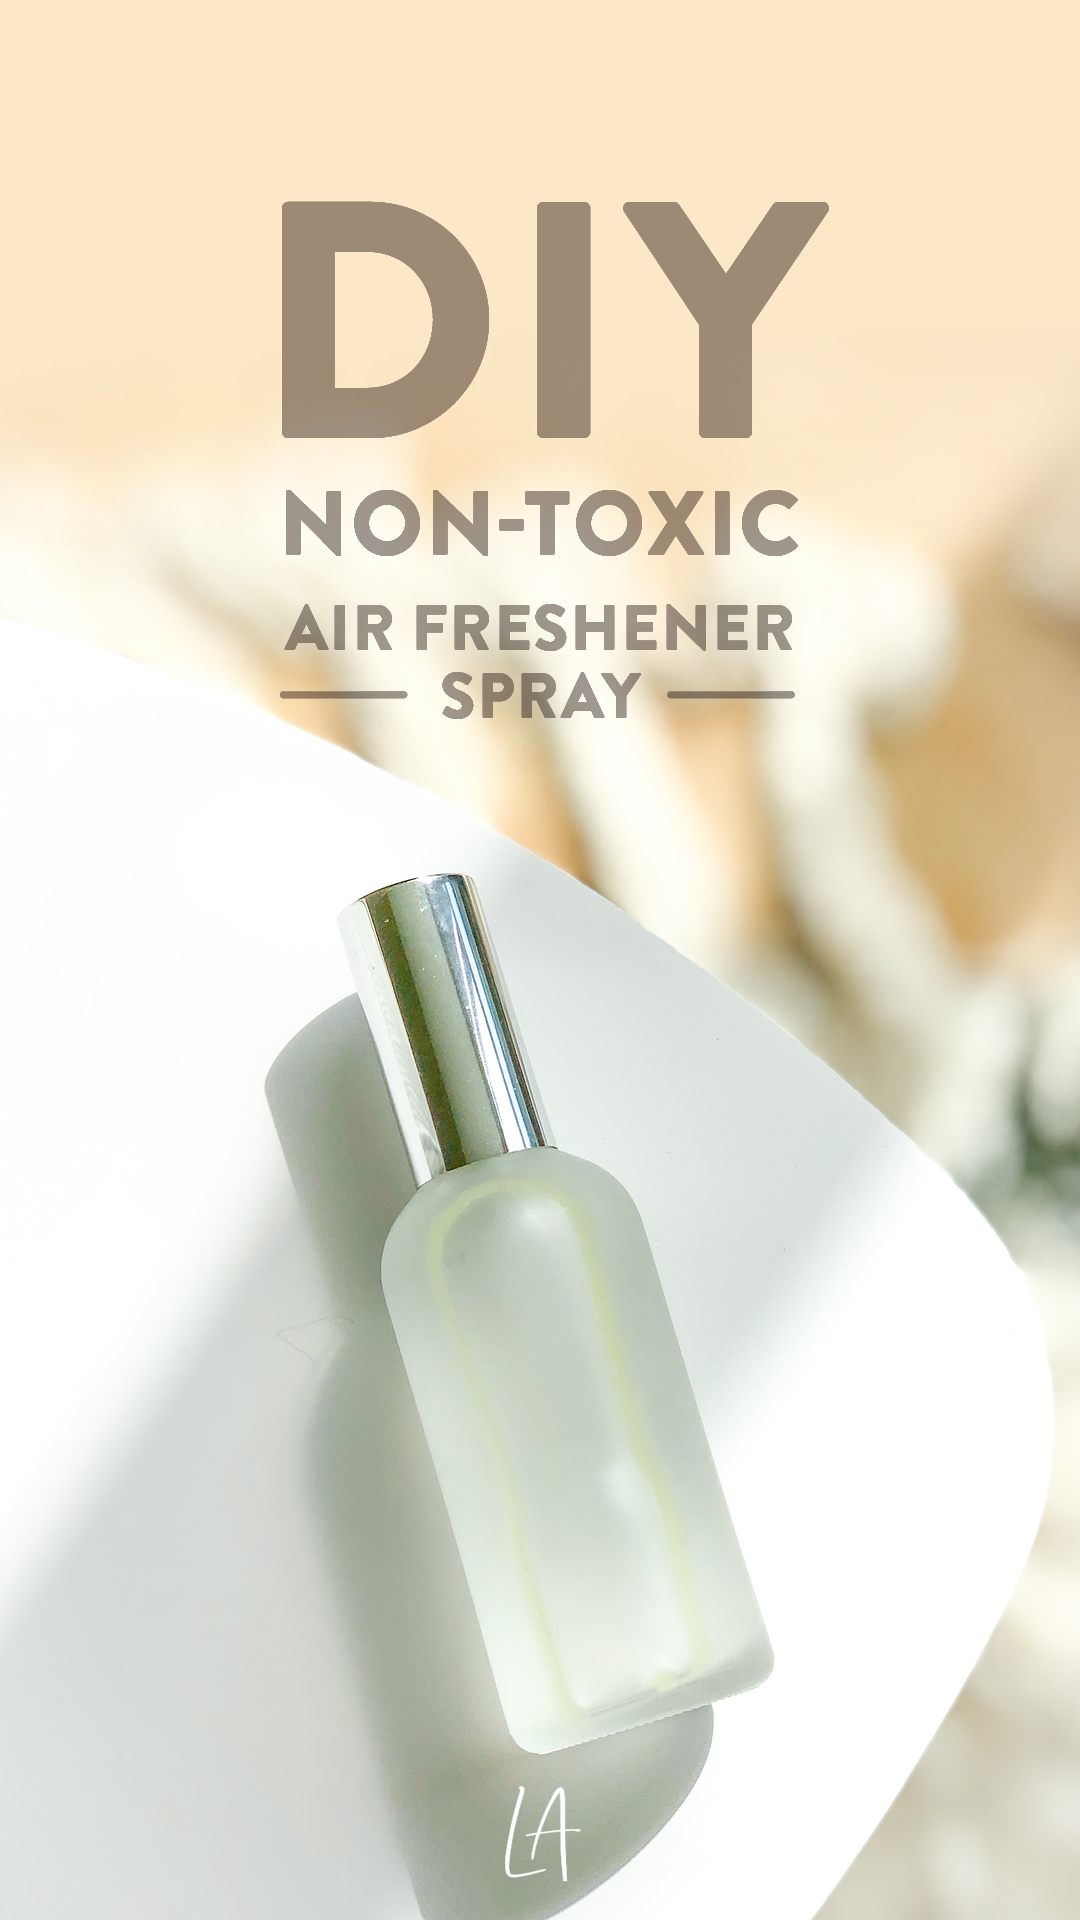 DIY Non-toxic air freshener spray